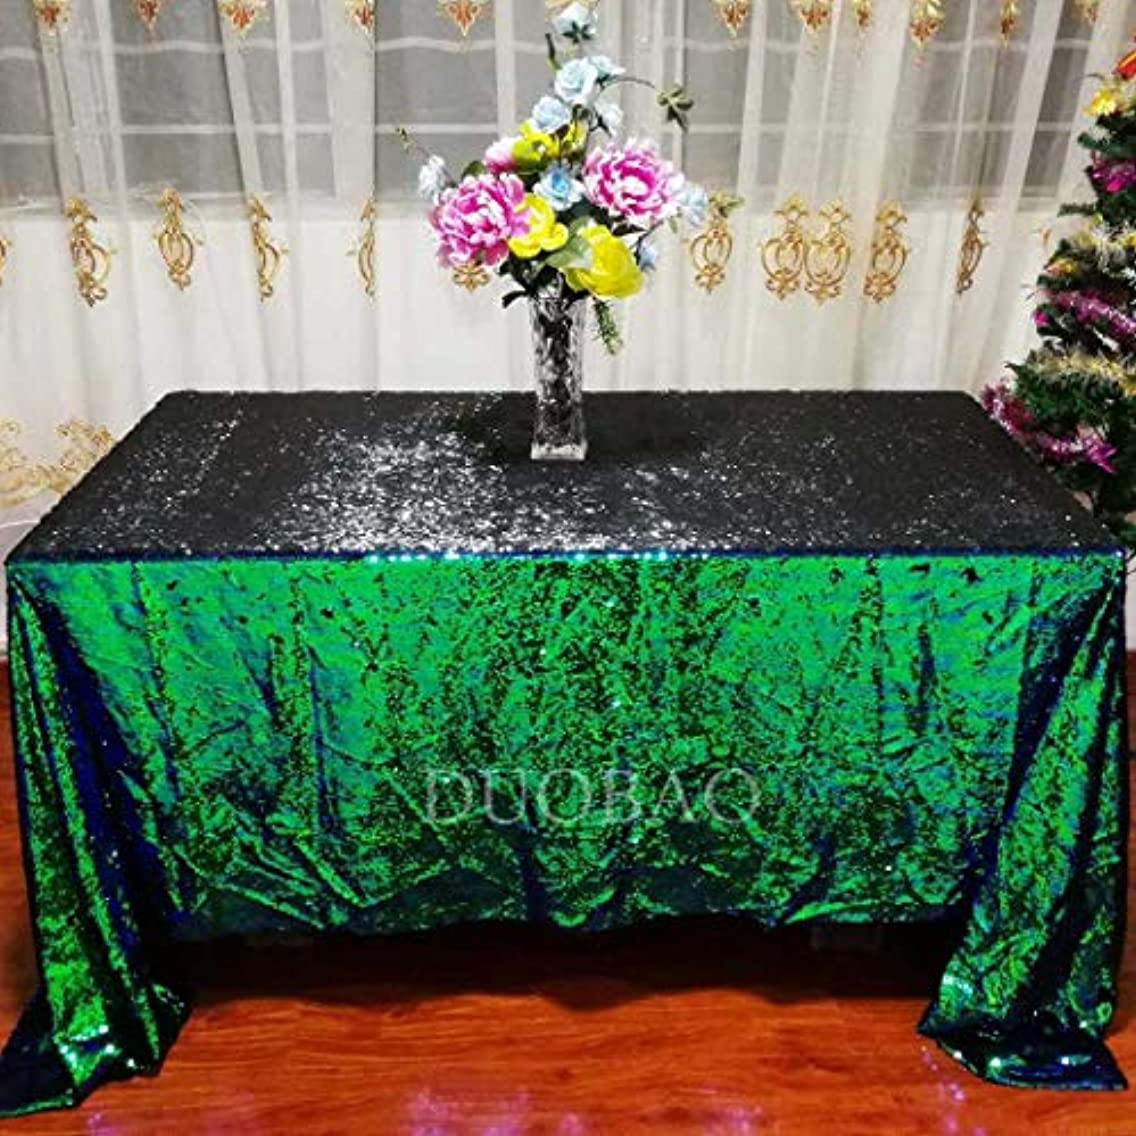 DUOBAO 72x72-Inch Mermaid Sequin Tablecloth Square Colorful Green to Black Sequence Tablecloth Table Cover Decorations for Party